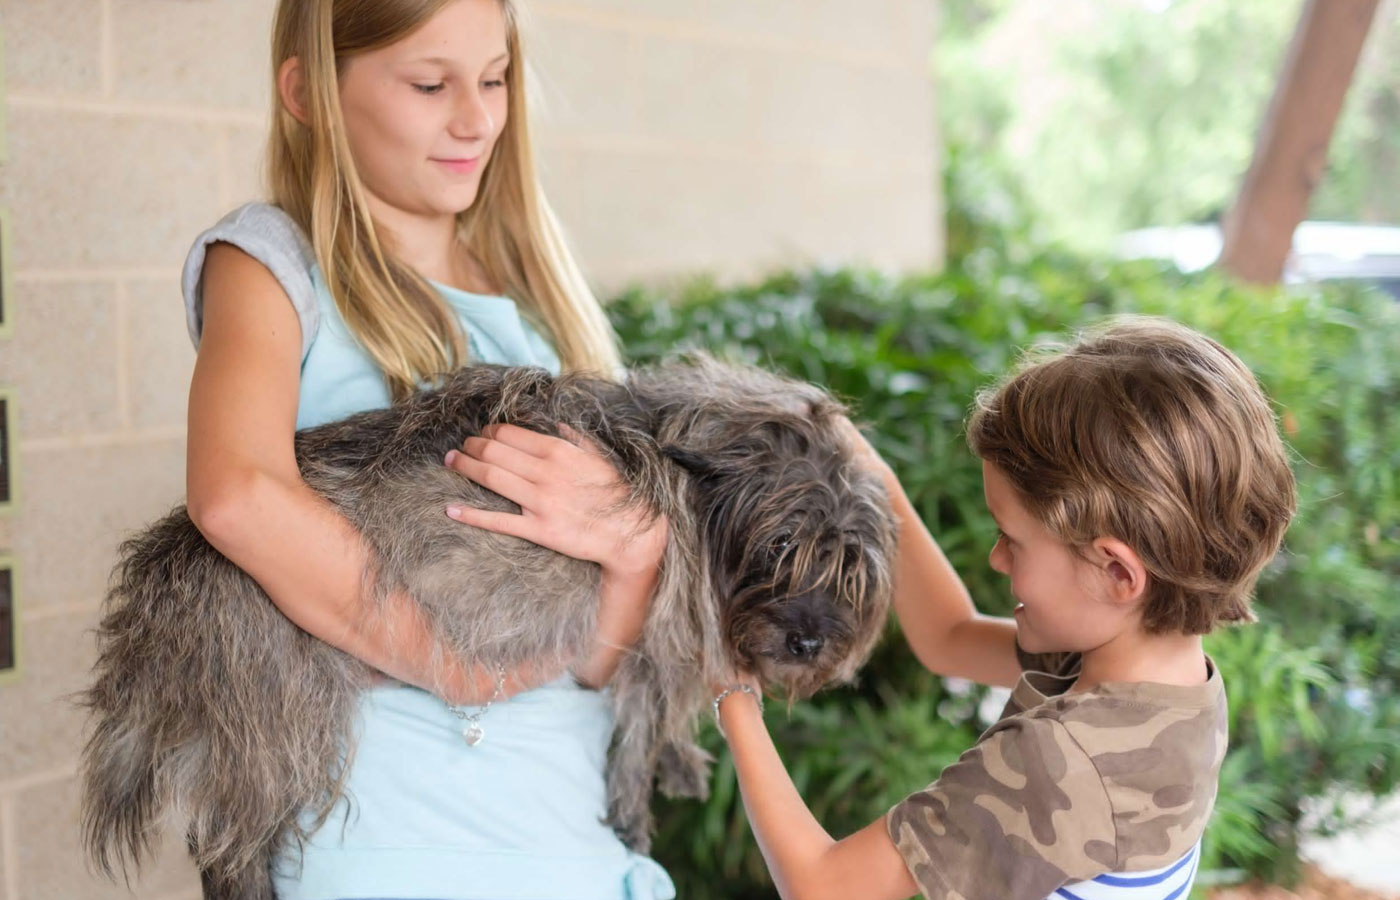 girl holding dog with microchip